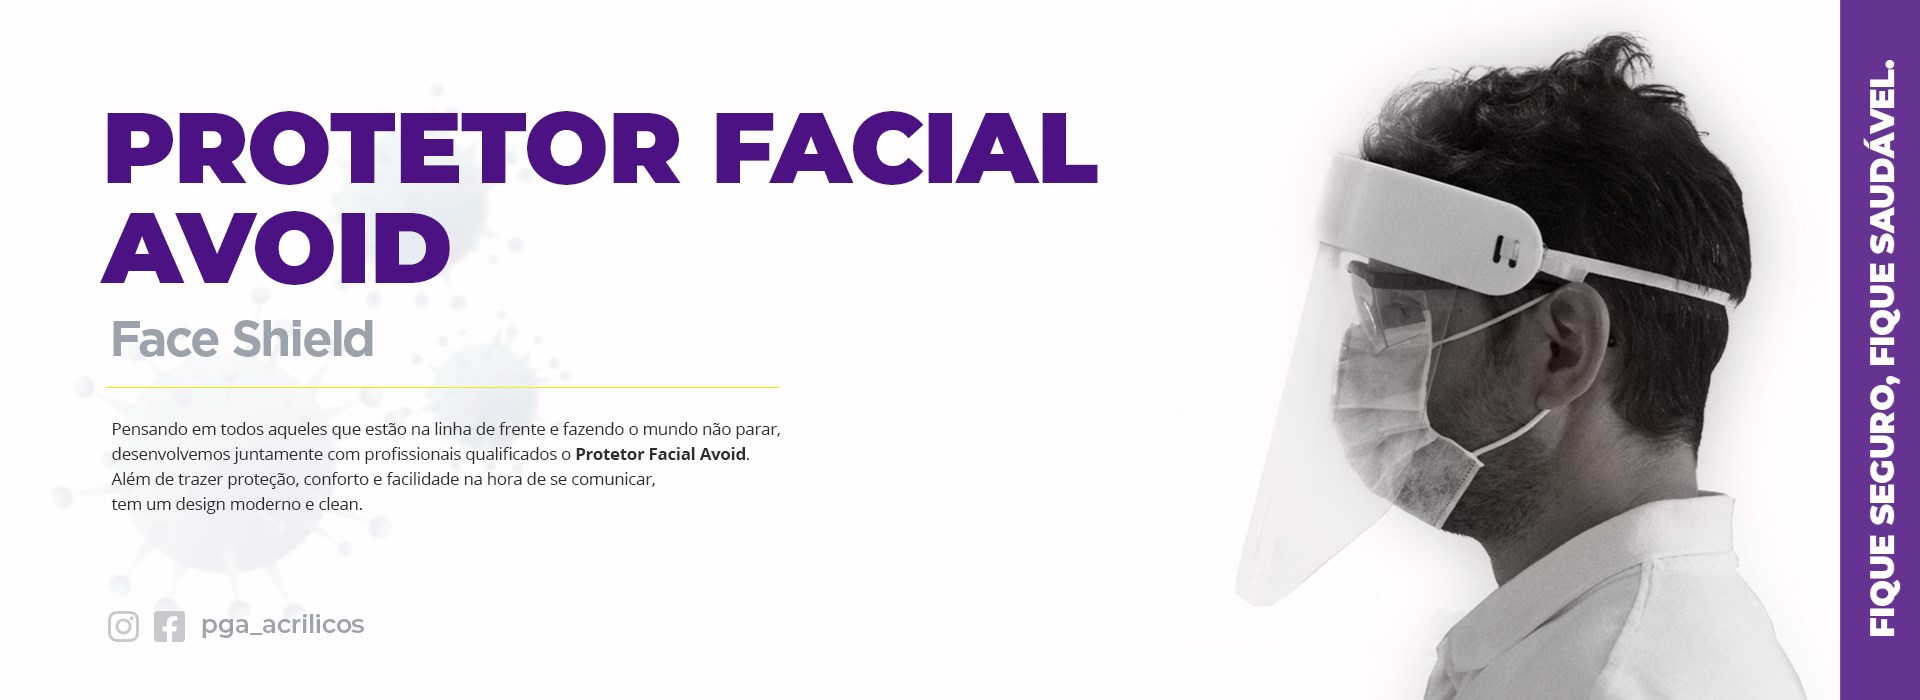 banner-protetor-facial-avoid-pgaacrilicos-face-shield